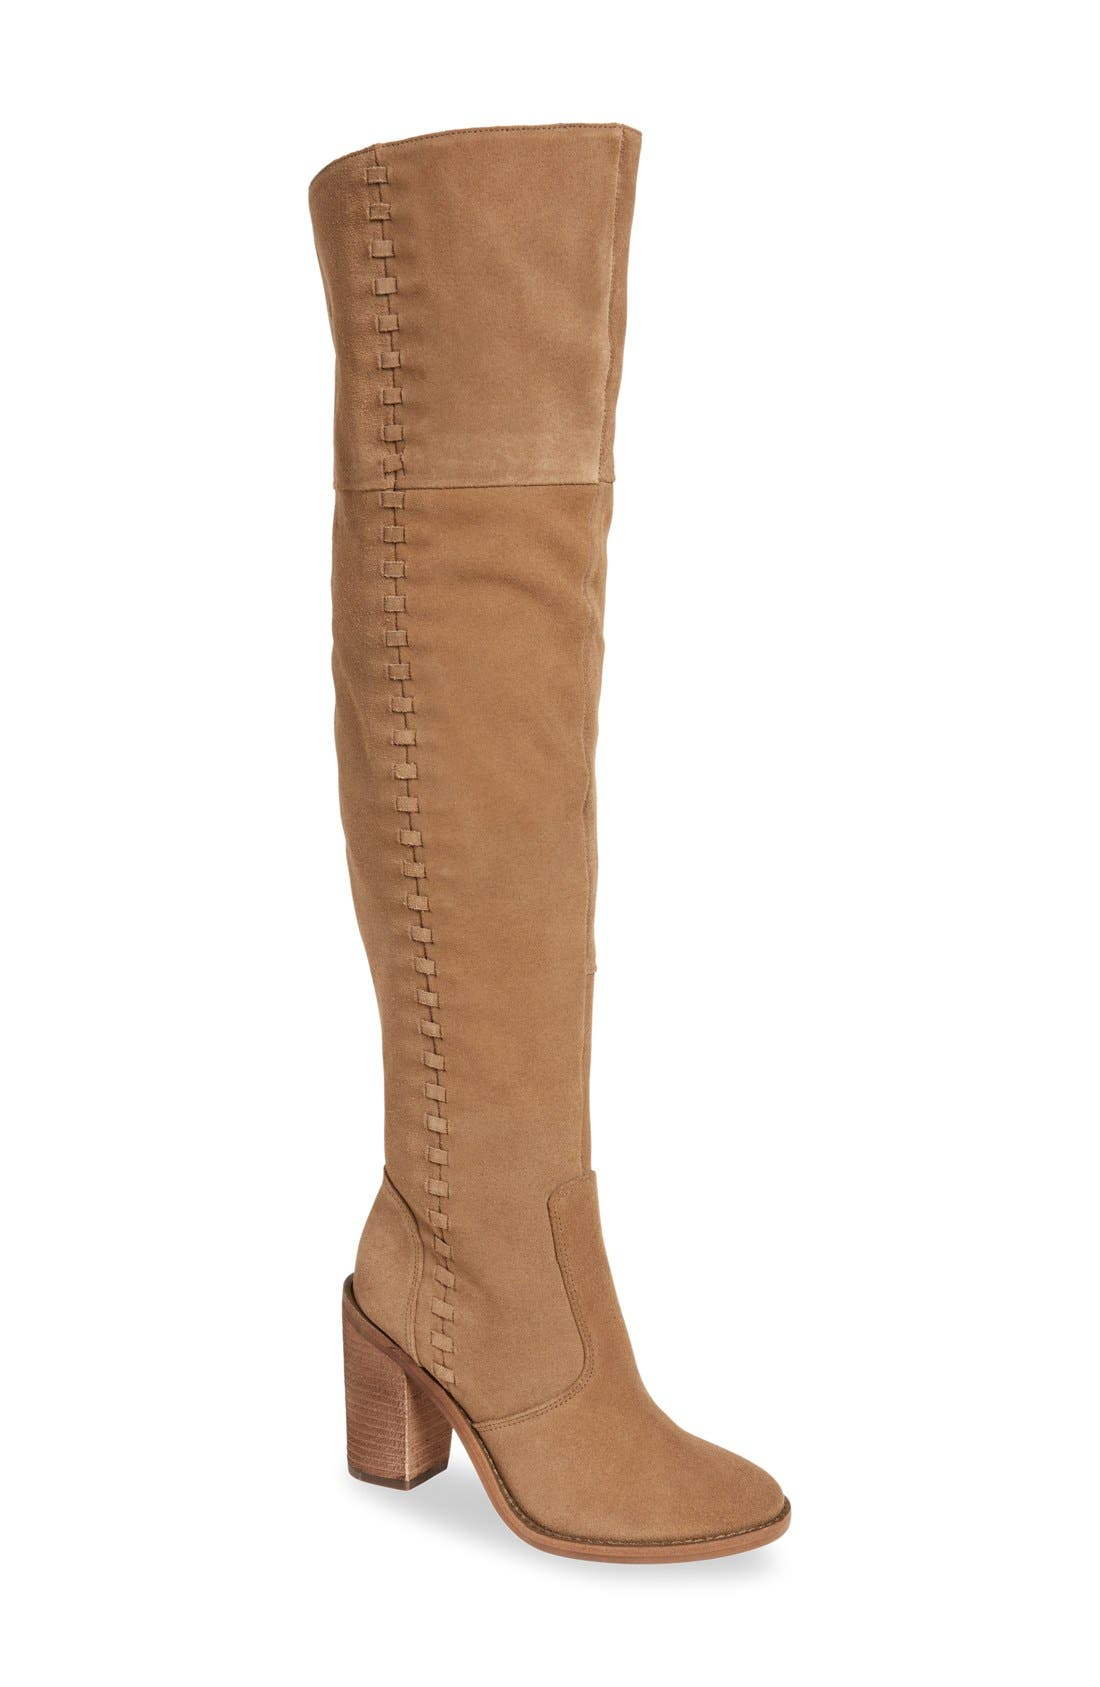 Main Image - Vince Camuto 'Morra' Over the Knee Boot (Women)